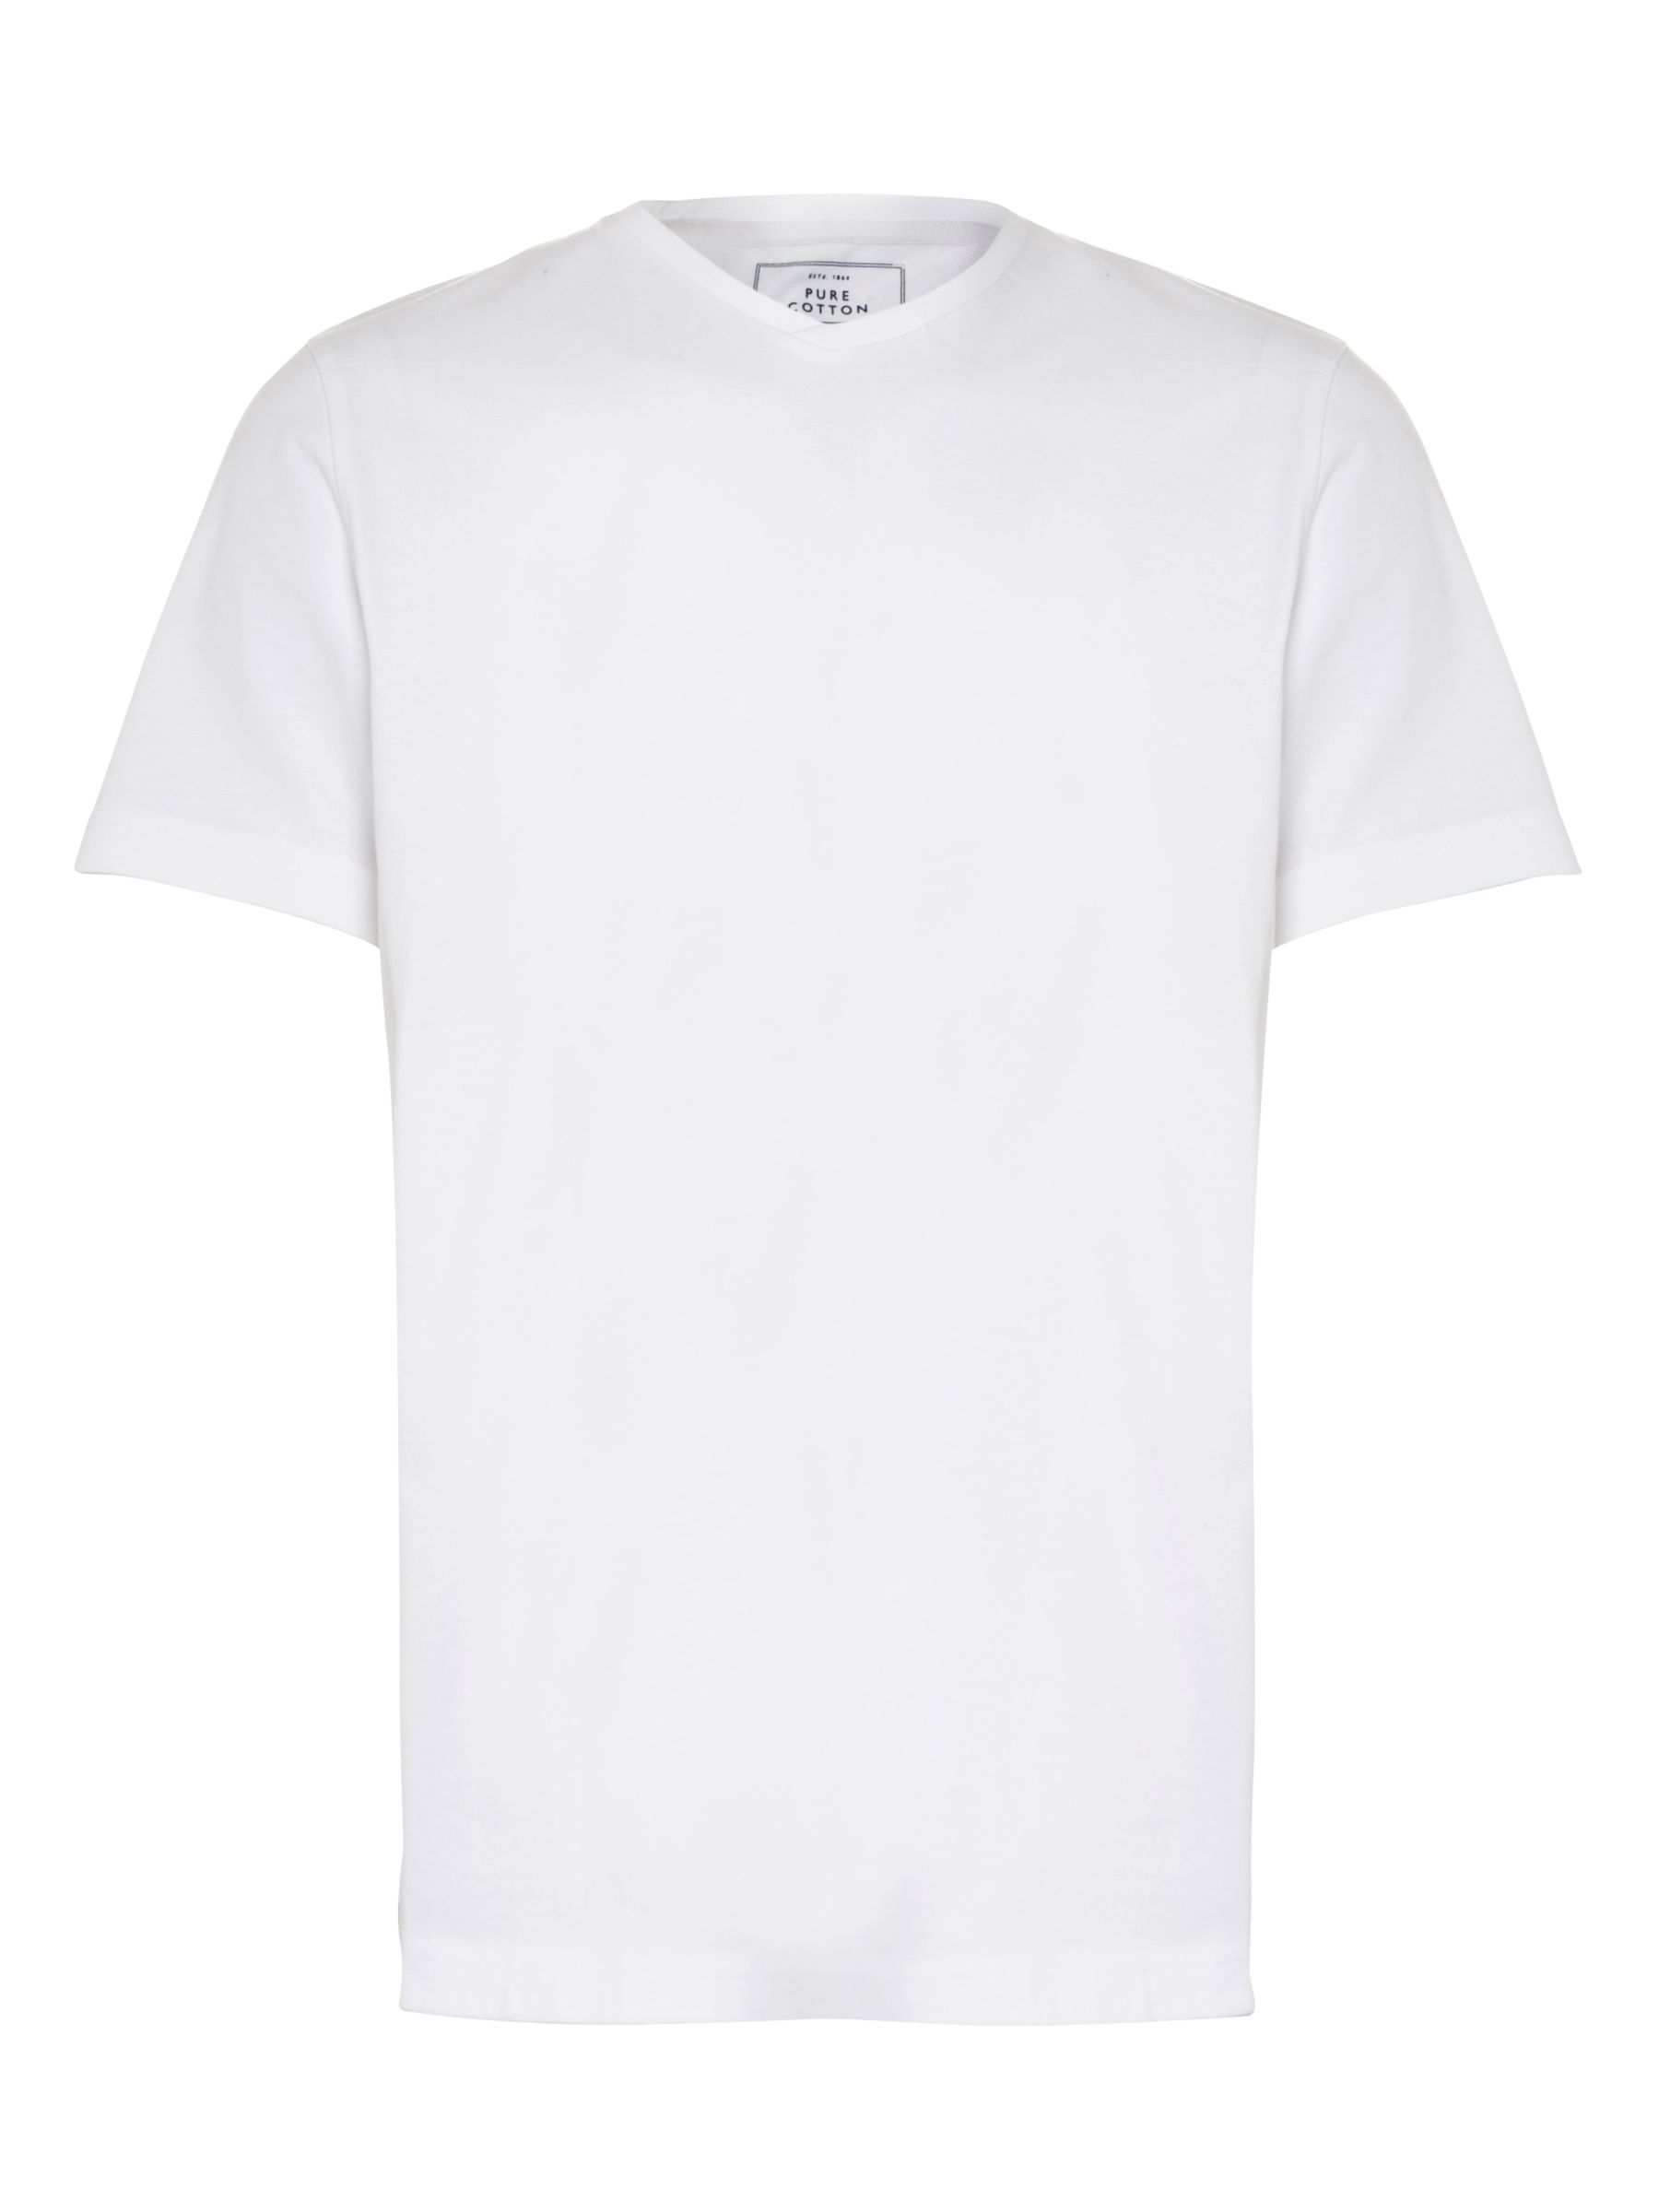 John Lewis Jersey V-Neck Cotton T-Shirt, White